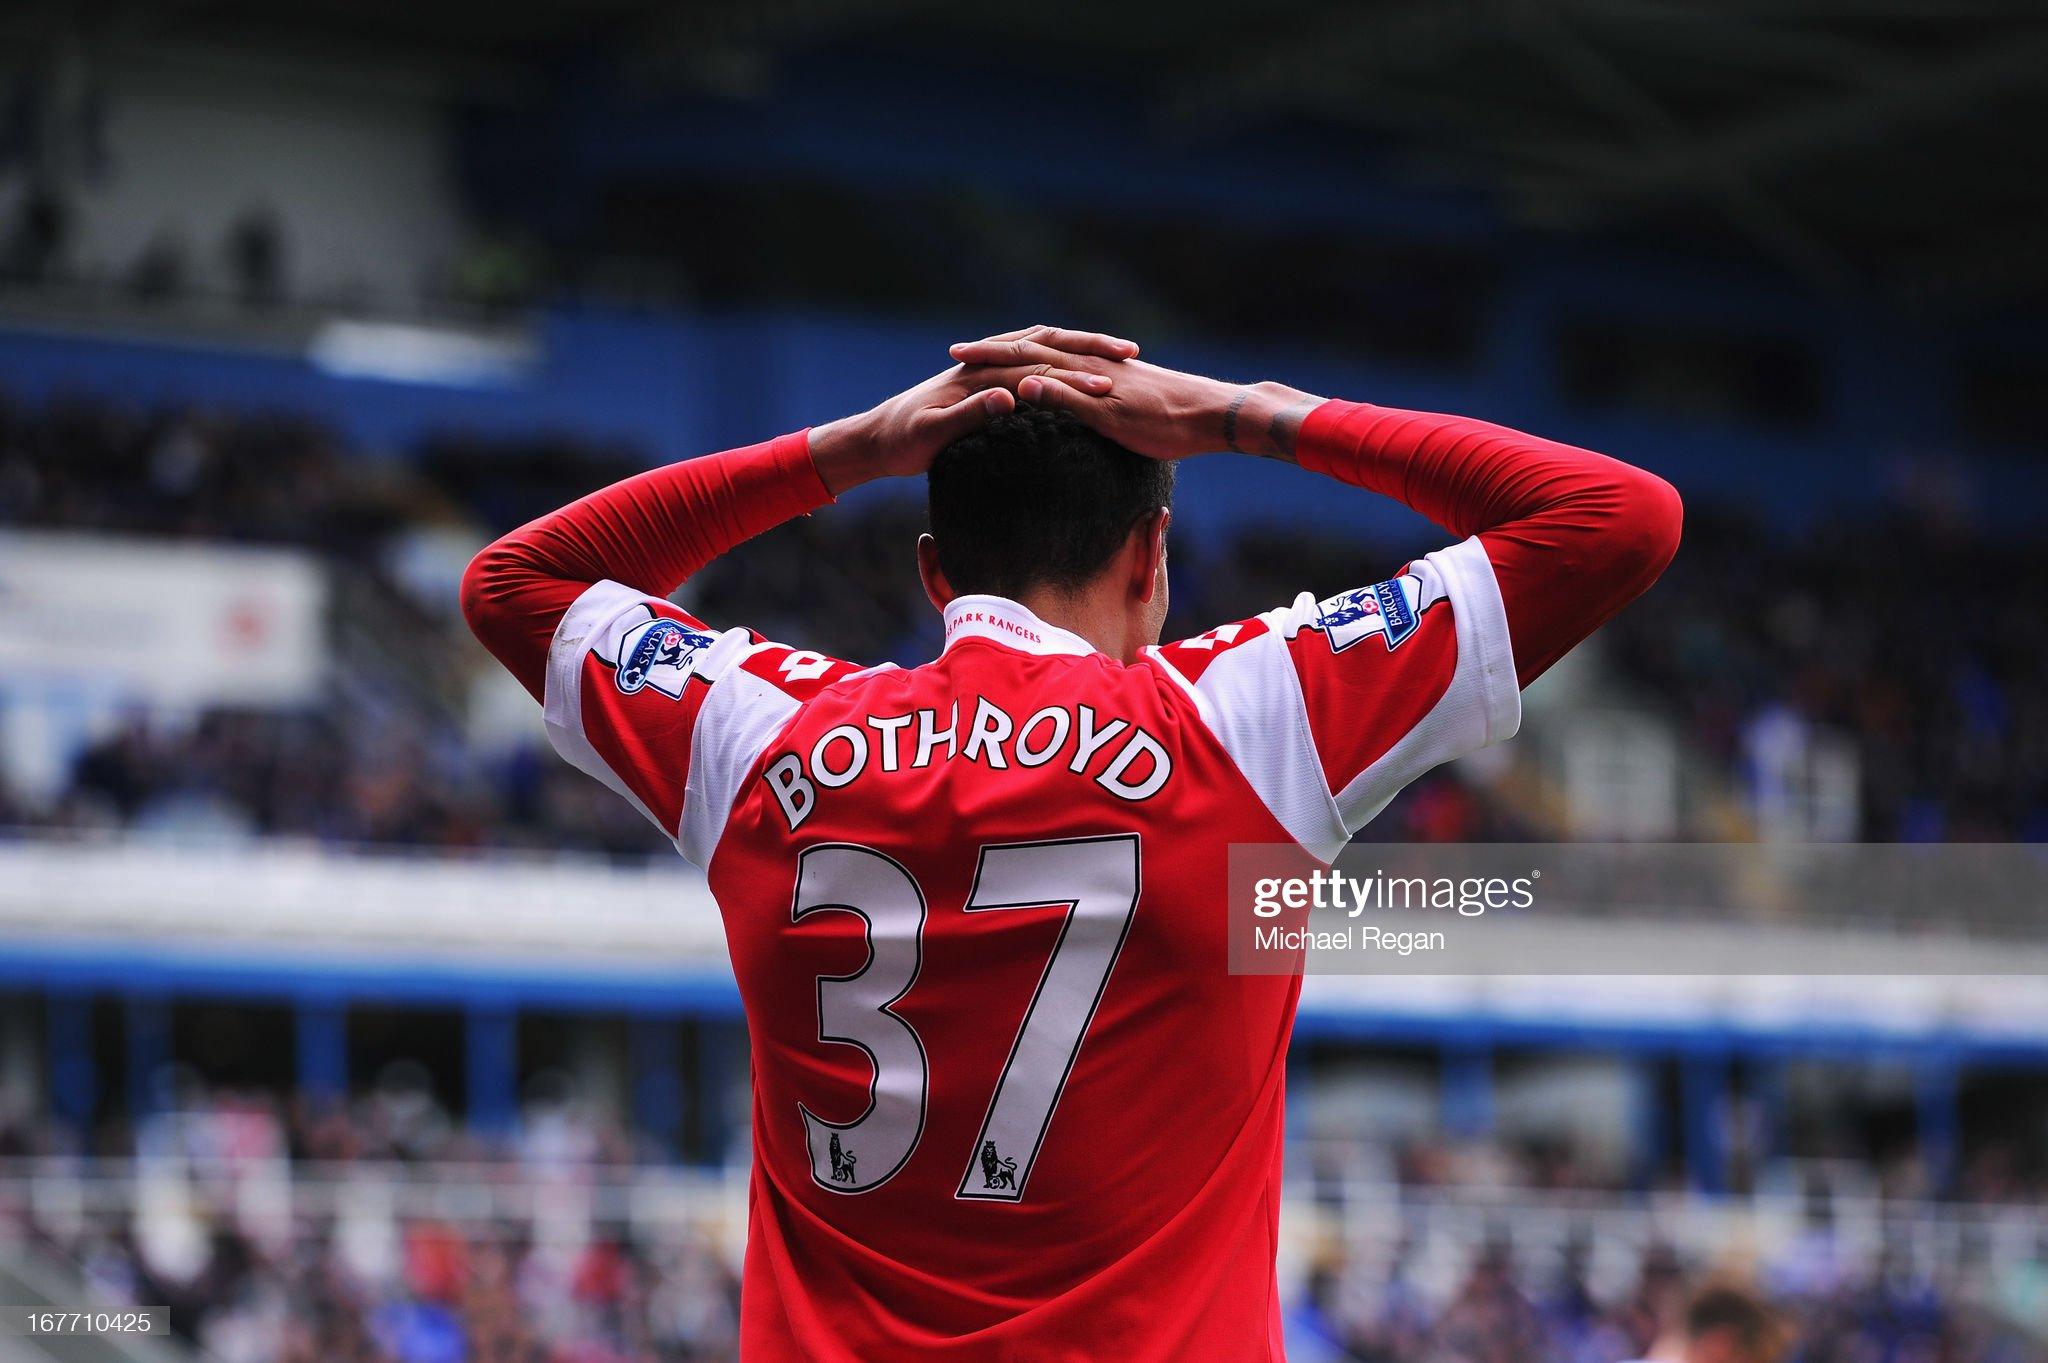 https://media.gettyimages.com/photos/jay-bothroyd-of-queens-park-rangers-holds-his-head-during-the-picture-id167710425?s=2048x2048